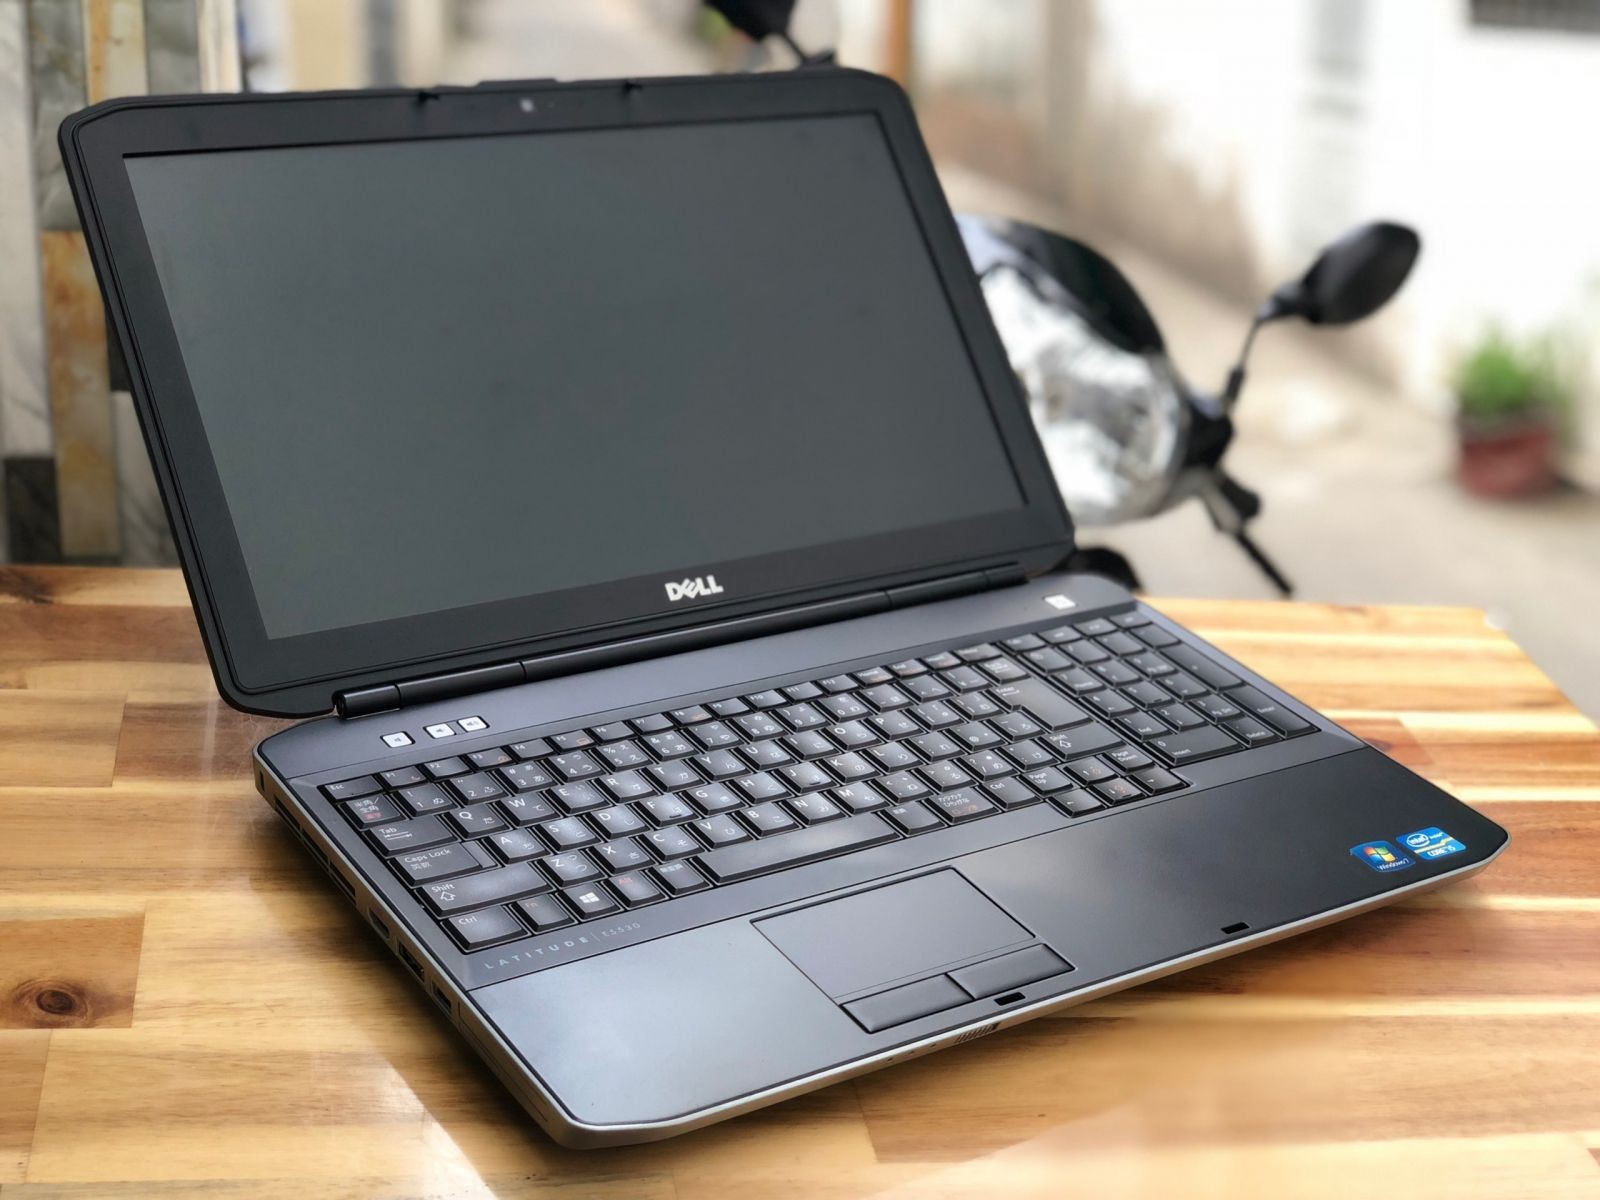 Dell Latitude E5530 Core i5 3210M_8GB